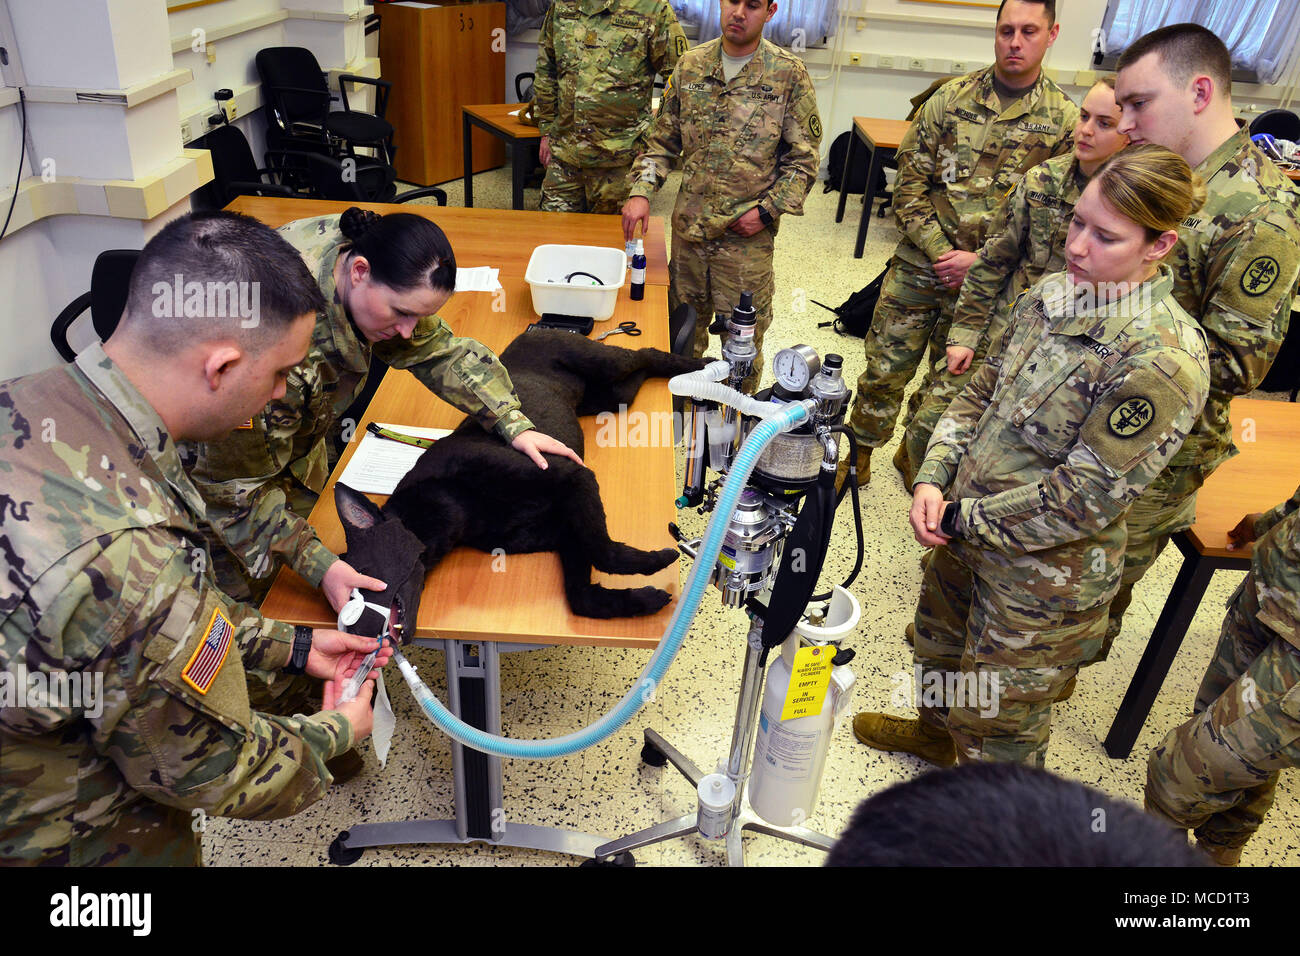 U.S. Army Sgt. Manuel Ivan Cervantes, animal care NCO, USARMY MEDCOM PH-E (left) and Sgt. Holly J. Schmidt assigned 64th Medical Detachment (USS) Baumholder Germany( center) , use Hero' the dummy training dog, to demonstrate how to properly intubate a patient who is undergoing general anesthesia during training Public Health Activity Italy Animal Care Specialists at Caserma Pluto, Longare, Vicenza, 12 Feb. 2018. Once the animal is intubated their heart and respiratory rate, blood oxygenation rate and carbon dioxide levels are monitored to make sure they're not too excessively sedated during su - Stock Image